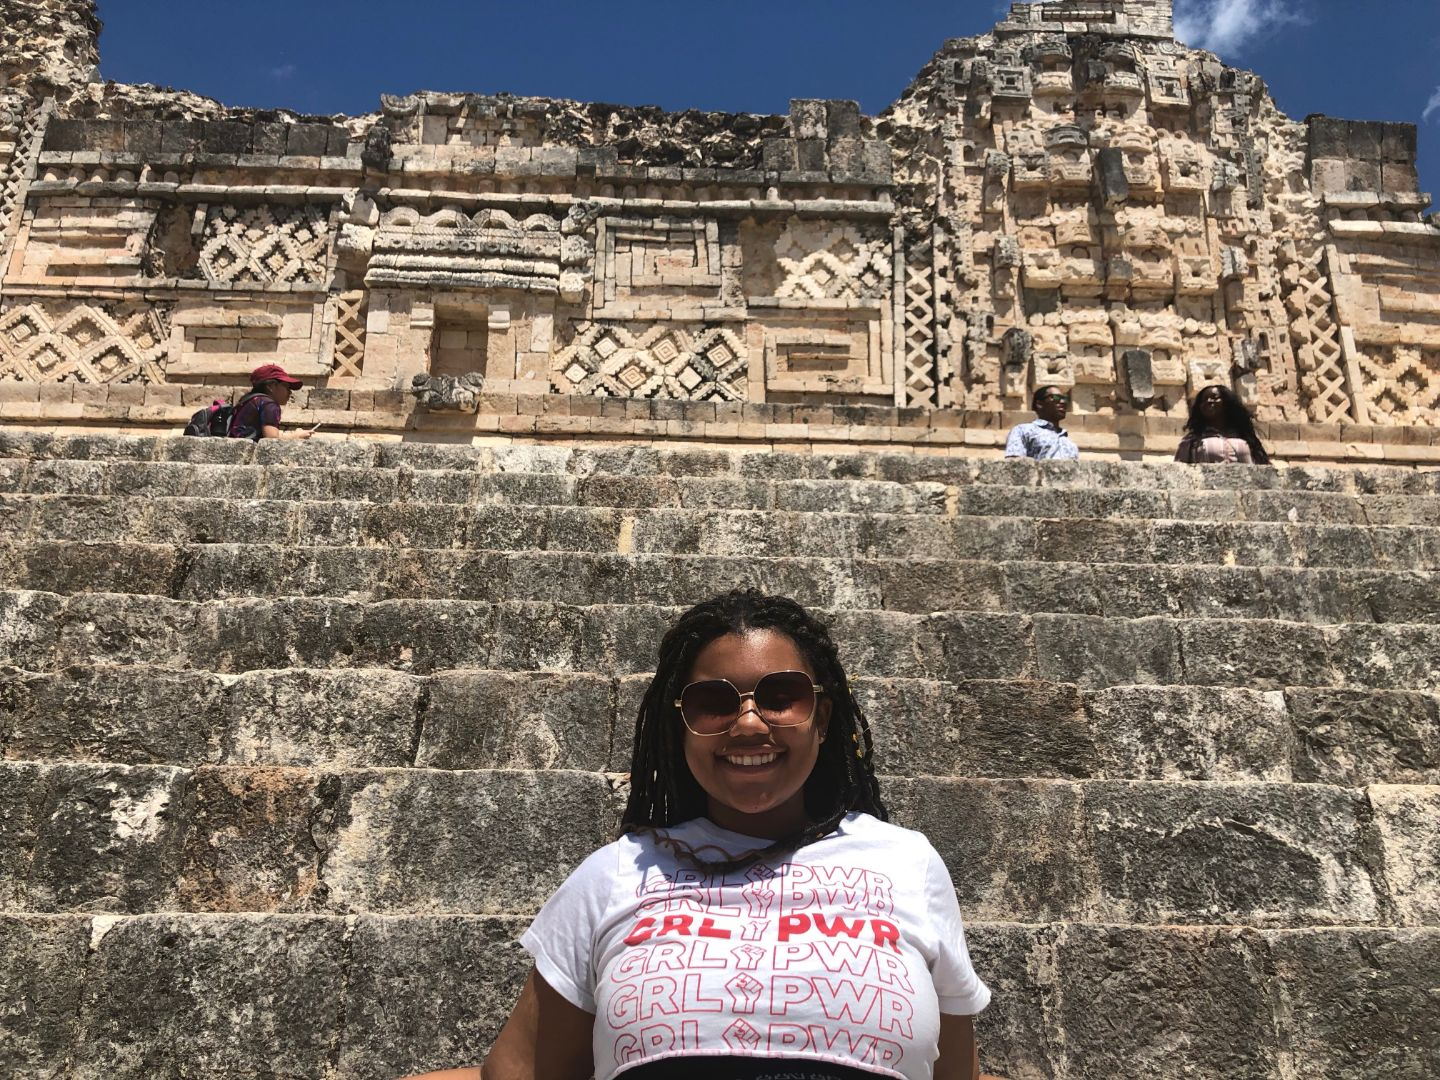 """Williams smiles in front of stone ruins, wearing a shirt that says """"GRL PWR""""."""